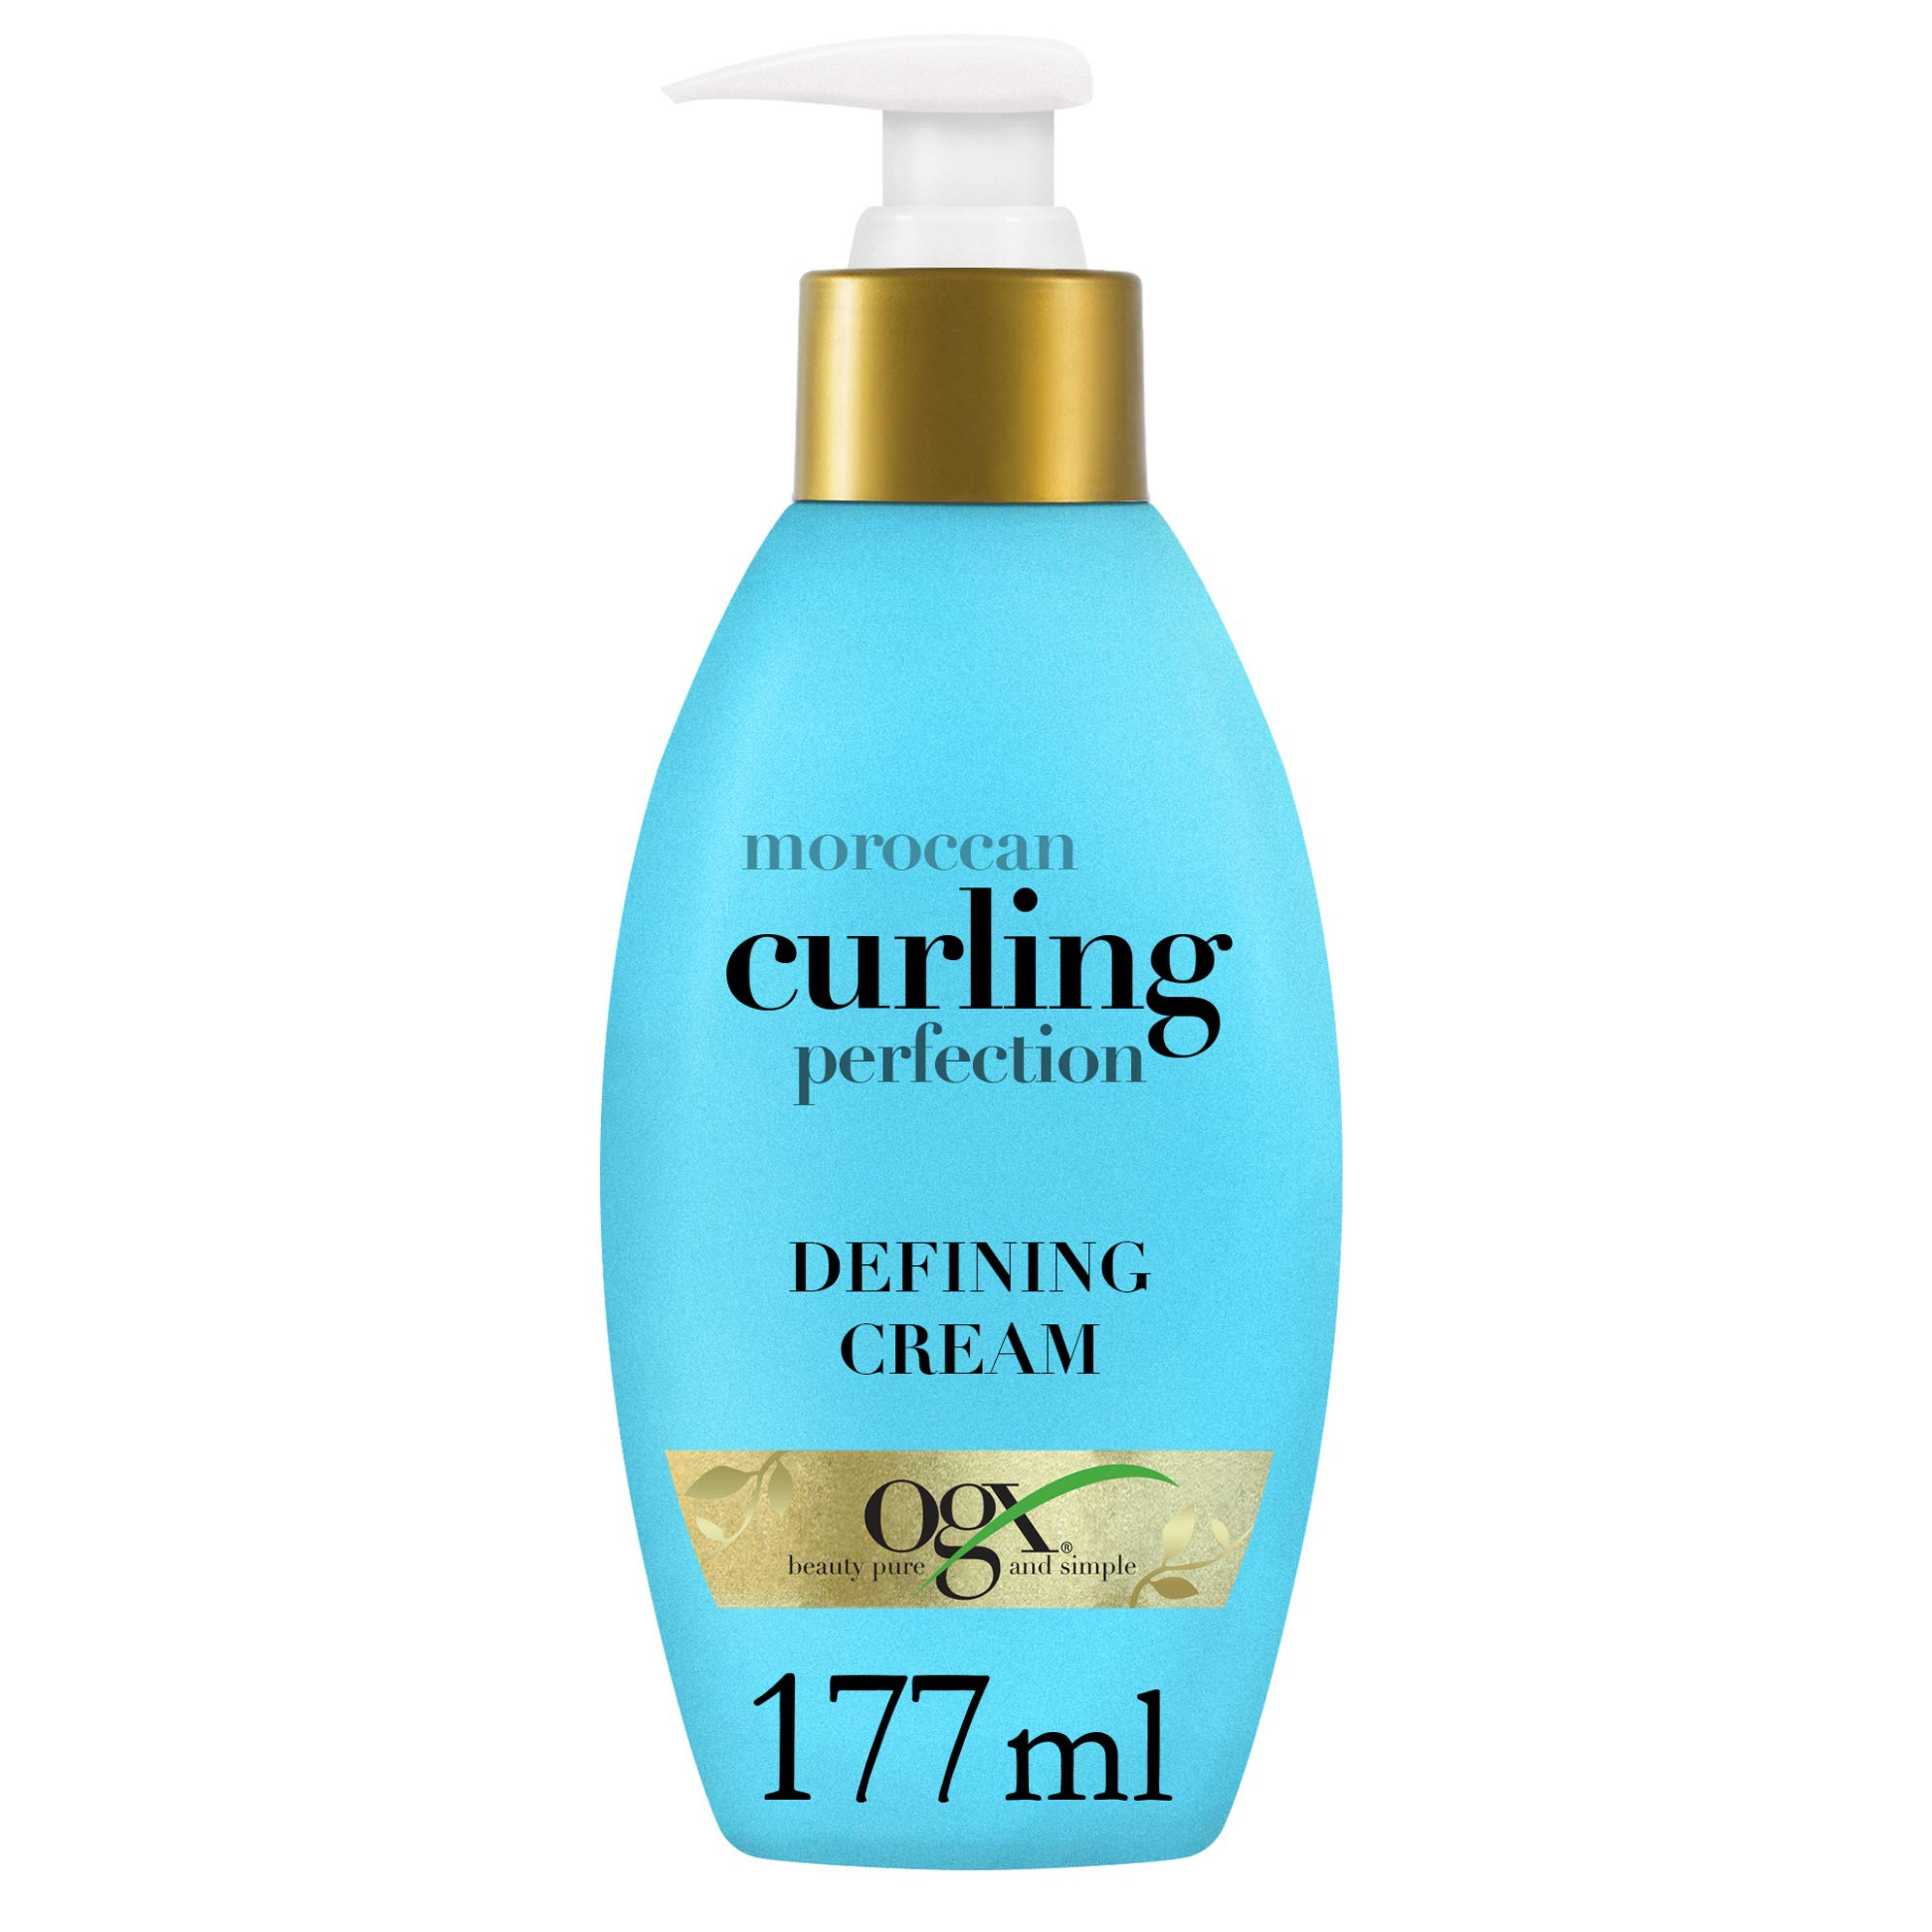 OGX Moroccan Curling Perfection Defining Cream, 177 ml